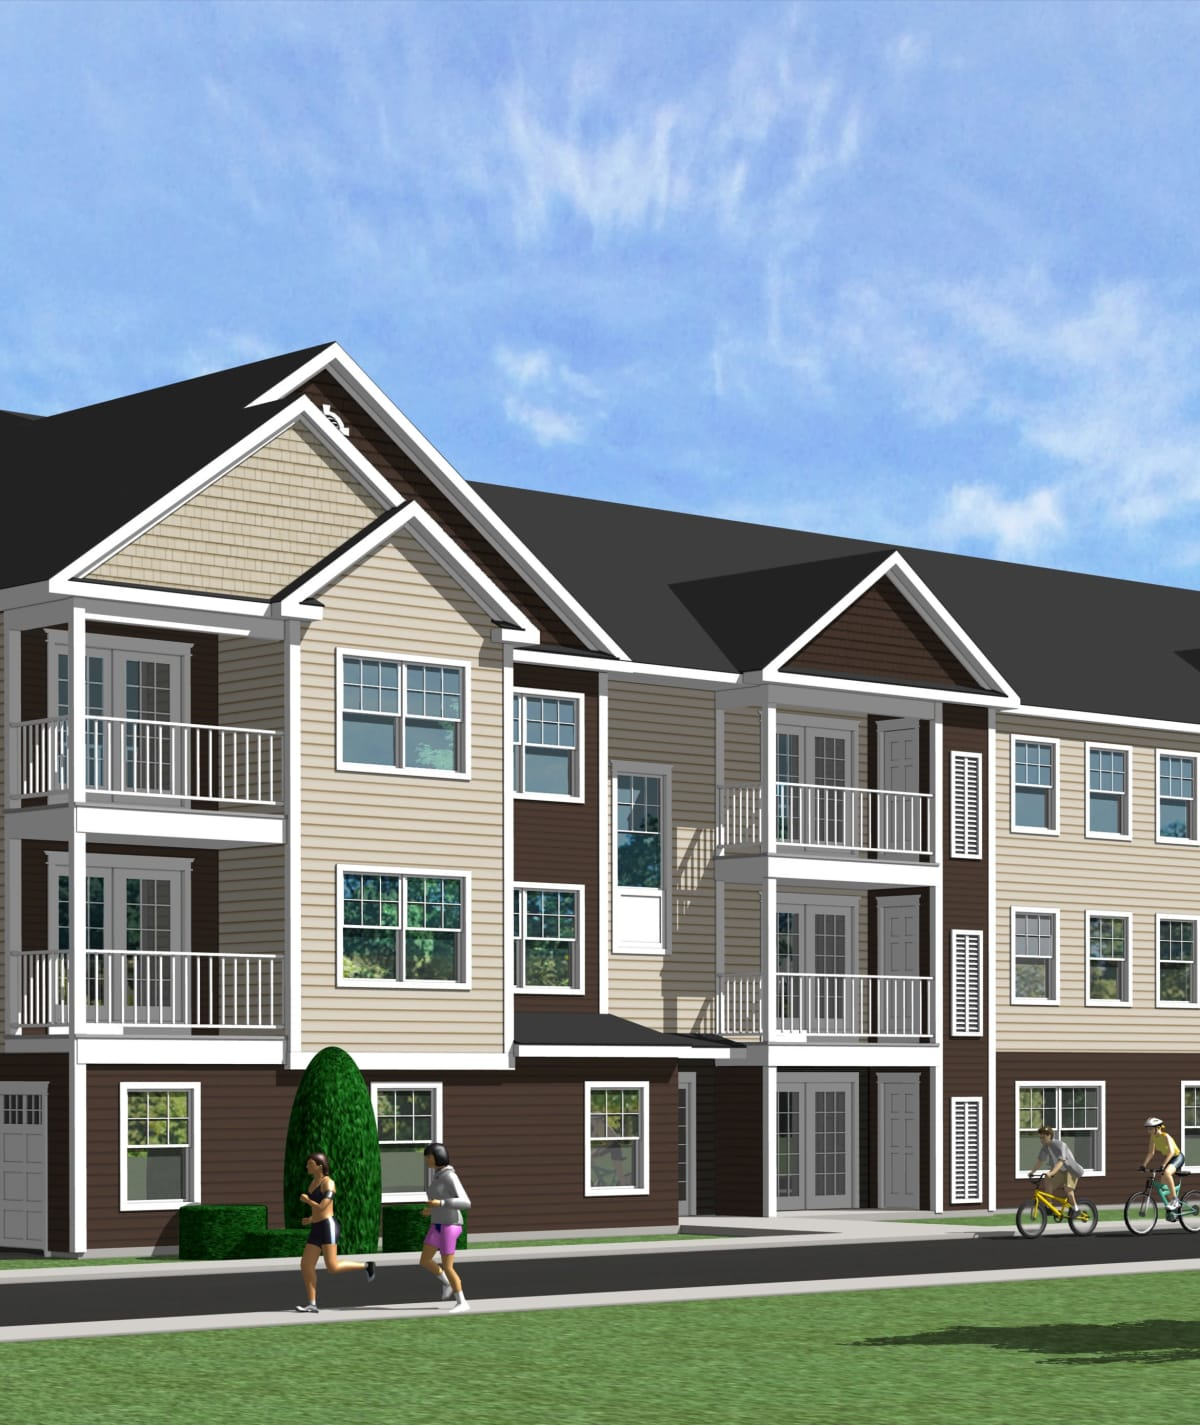 Apartments in Ballston Spa, NY